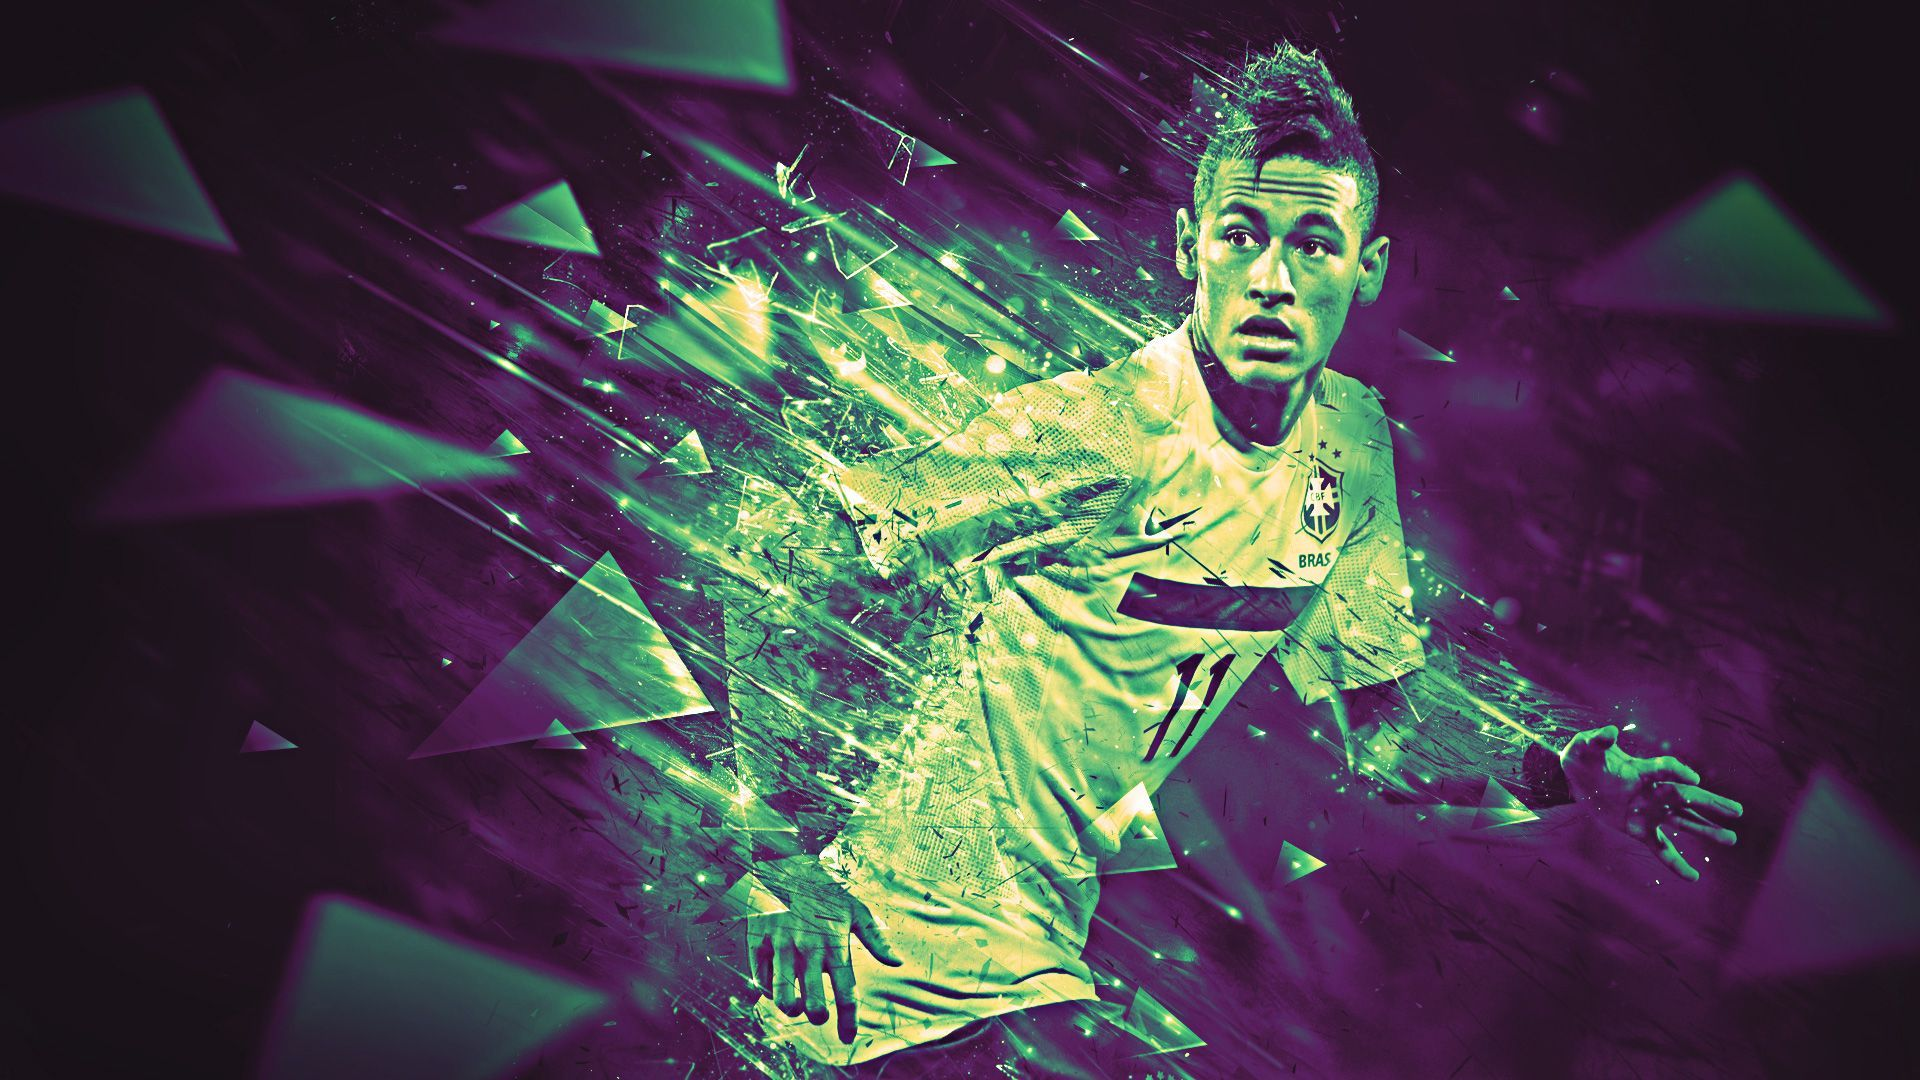 FIFA Wallpapers Wallpaper 1280x720 Fifa 49